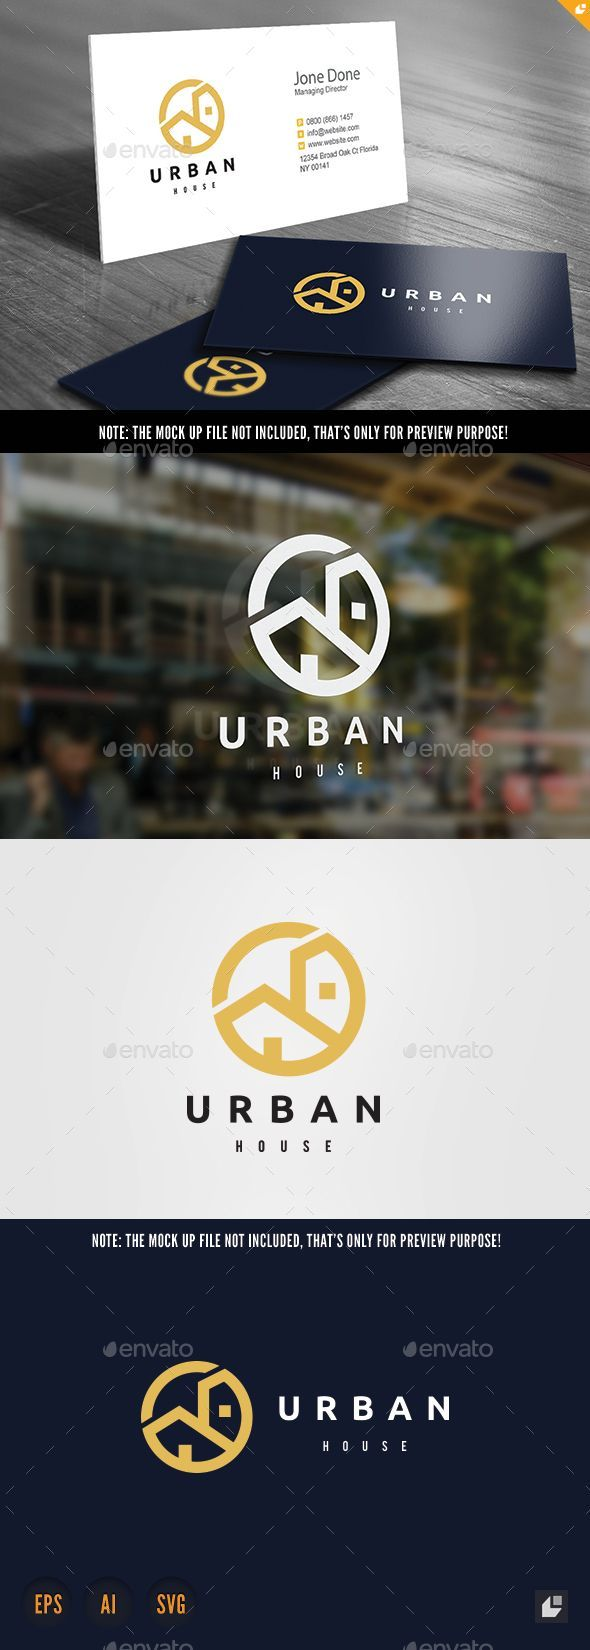 Urban House Logo by LayerSky This logo